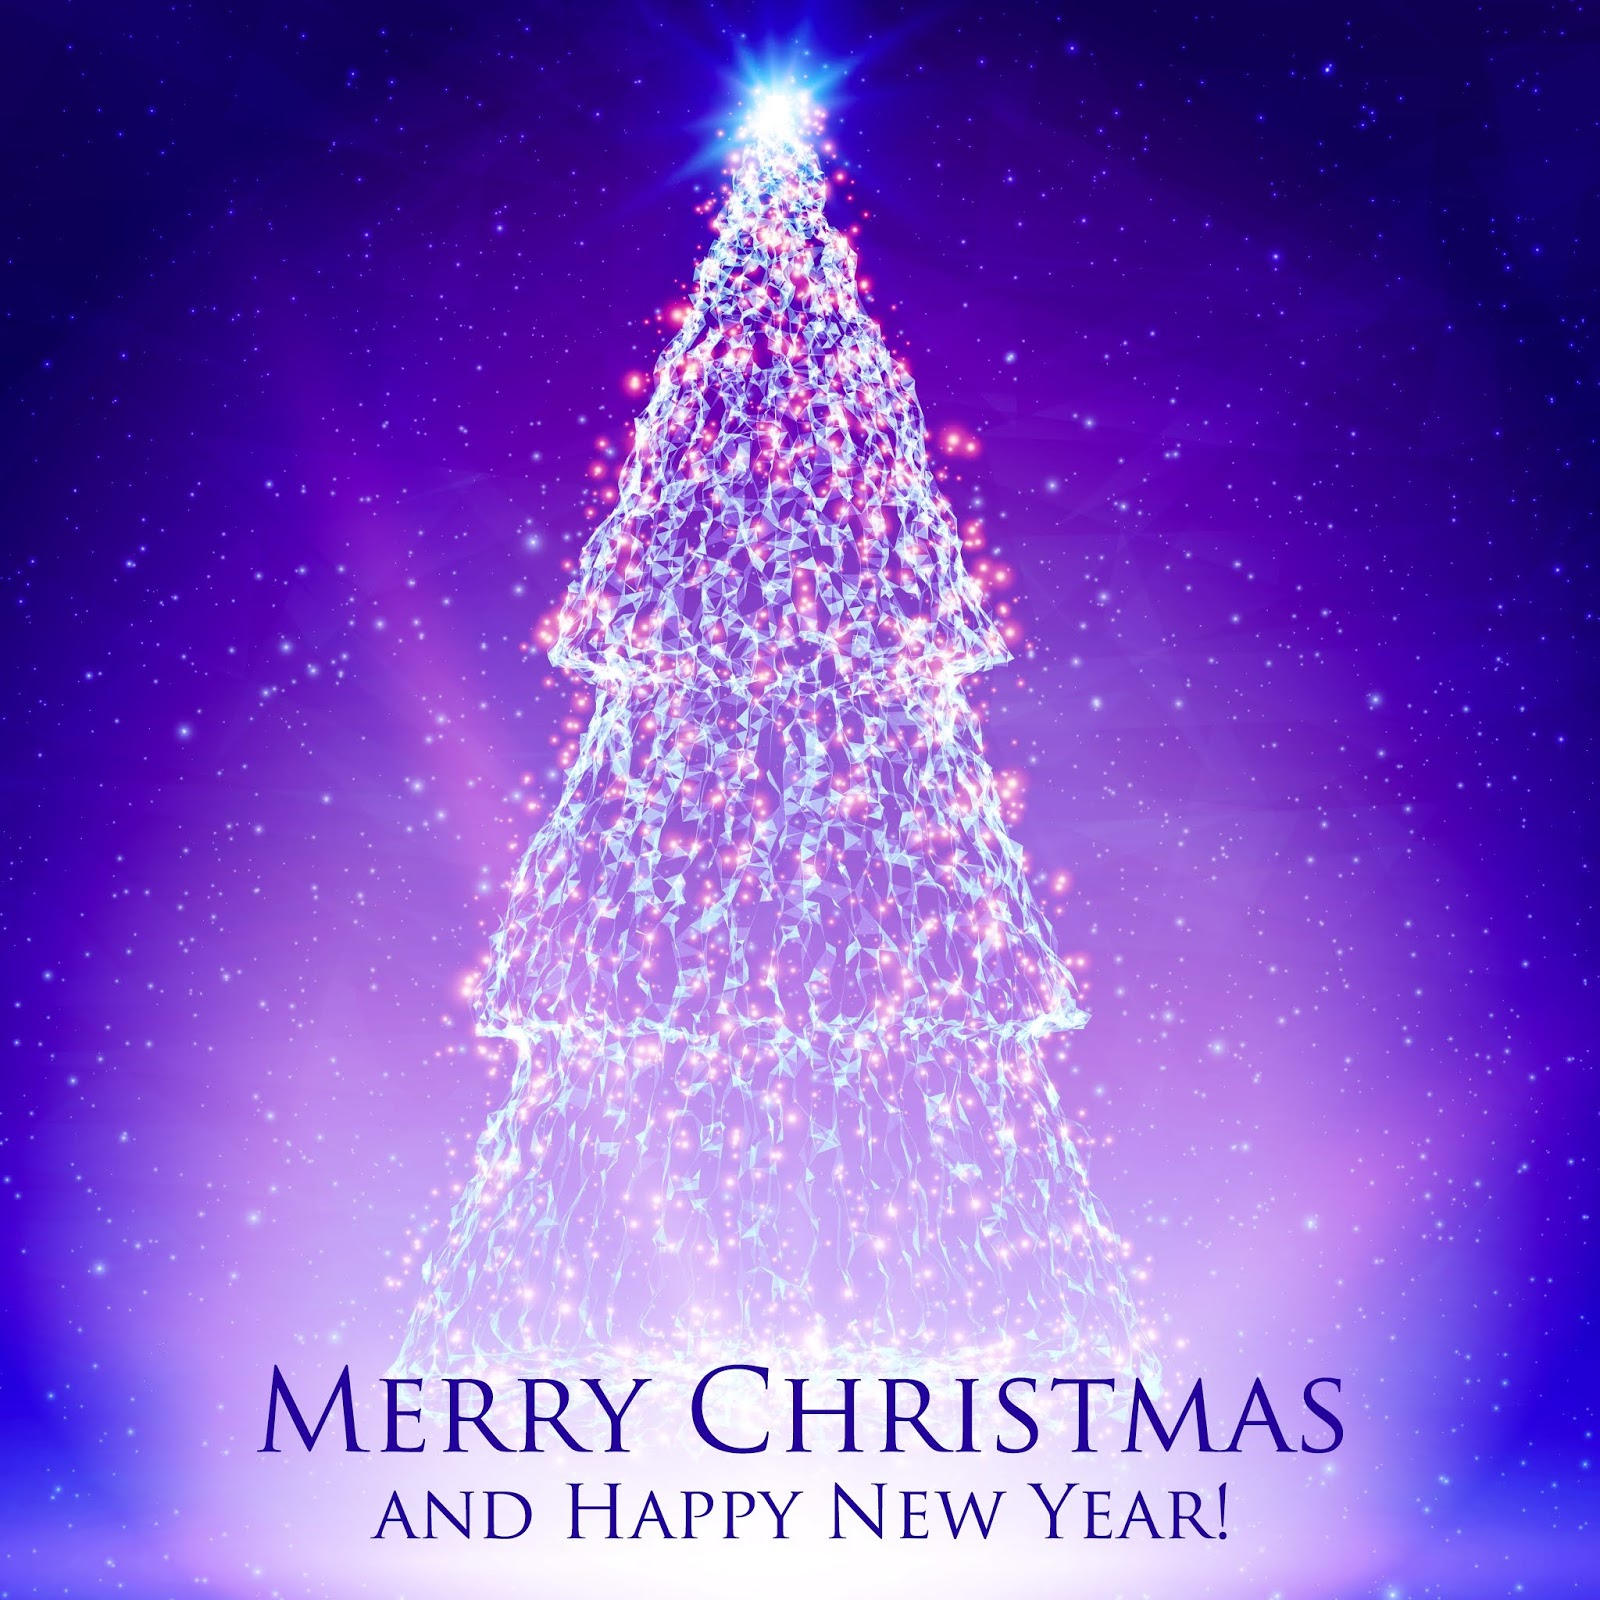 Shining Christmas Trees Colorful Violet Background With Backlight Glowing Particles Abstract Vector Background Glowing Fir Tree Elegant Shining Background You Design Free Download Vector CDR, AI, EPS and PNG Formats